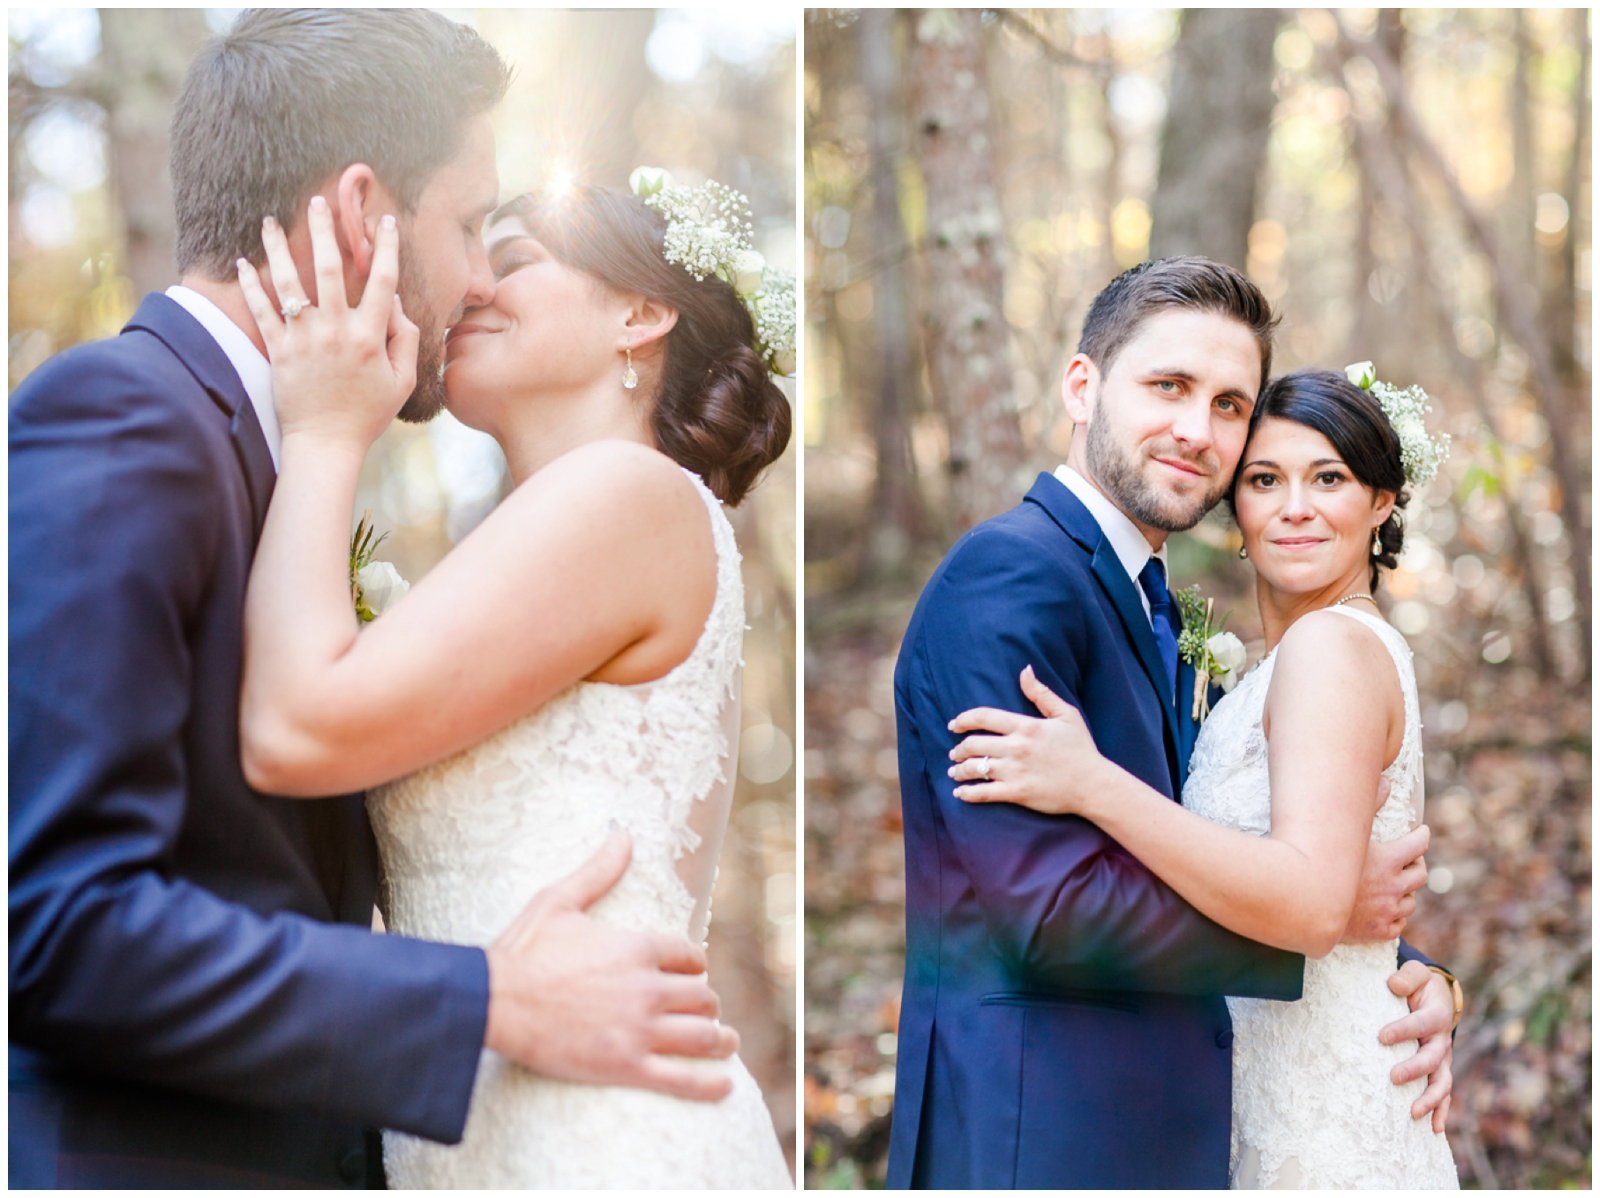 R&G_AtlantaWeddingPhotographer_WhiteOaksBarn_0015